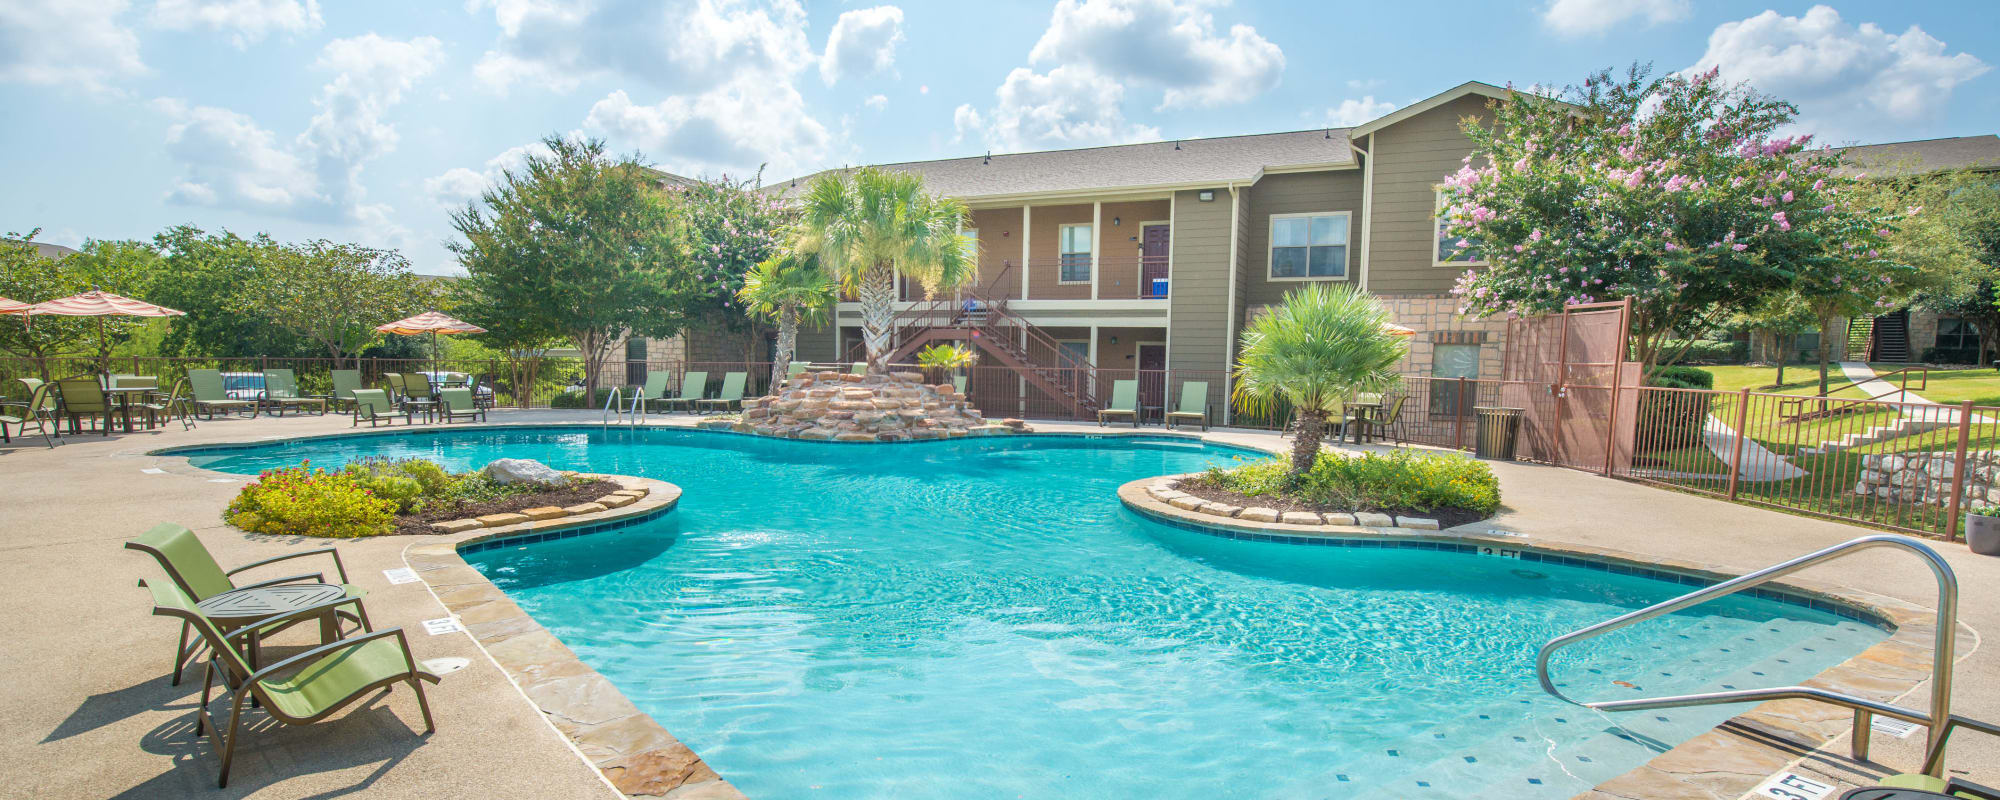 Newly renovated swimming pool at Arya Grove in Universal City, Texas